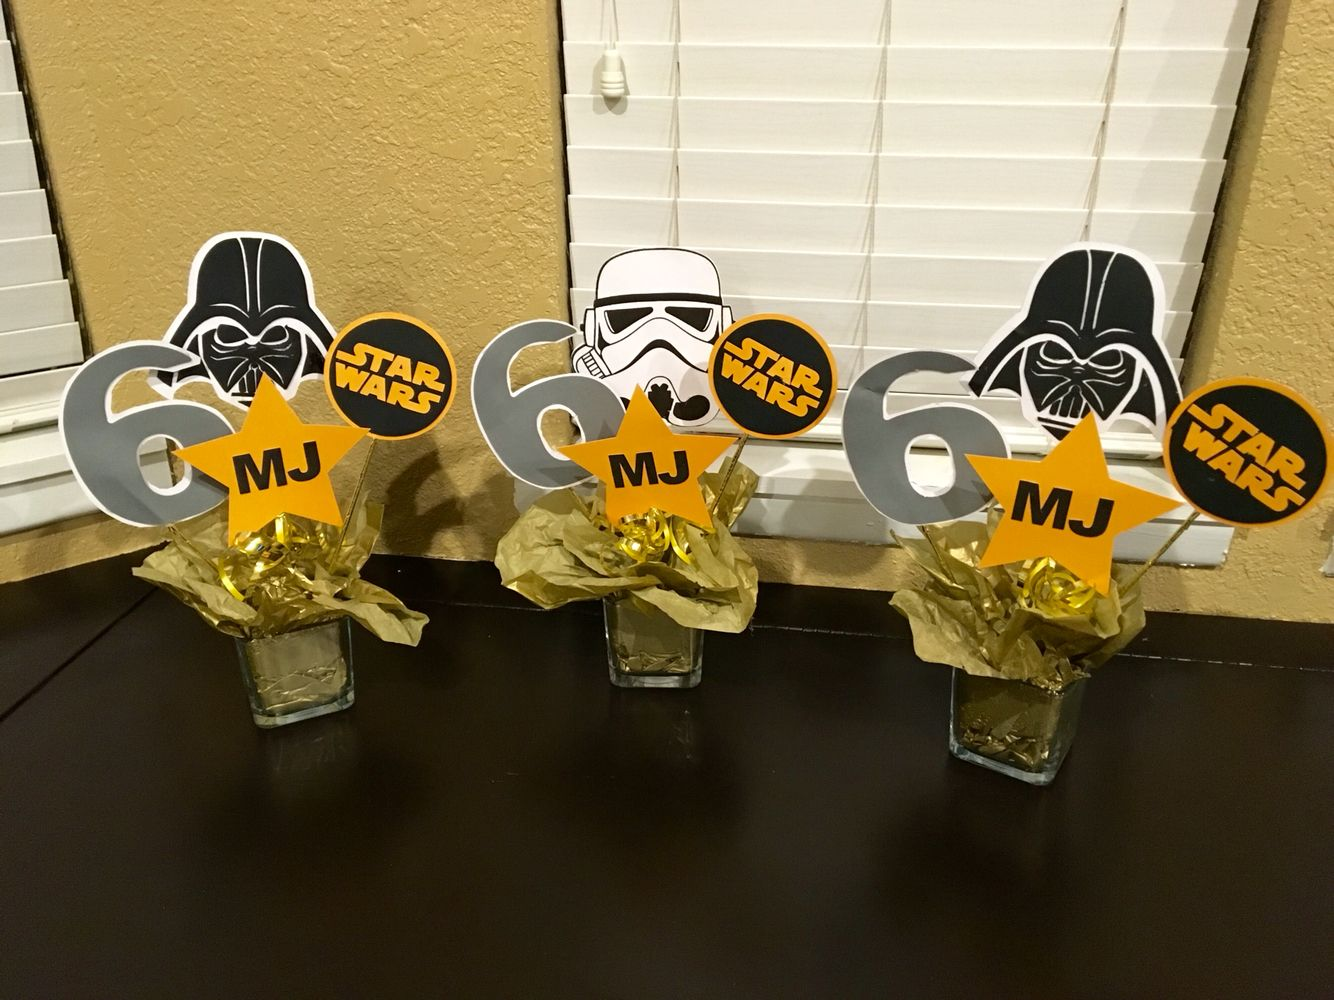 Star Wars Decorations Ideas Diy Starwars Birthday Centerpiece Diy Star Wars Party